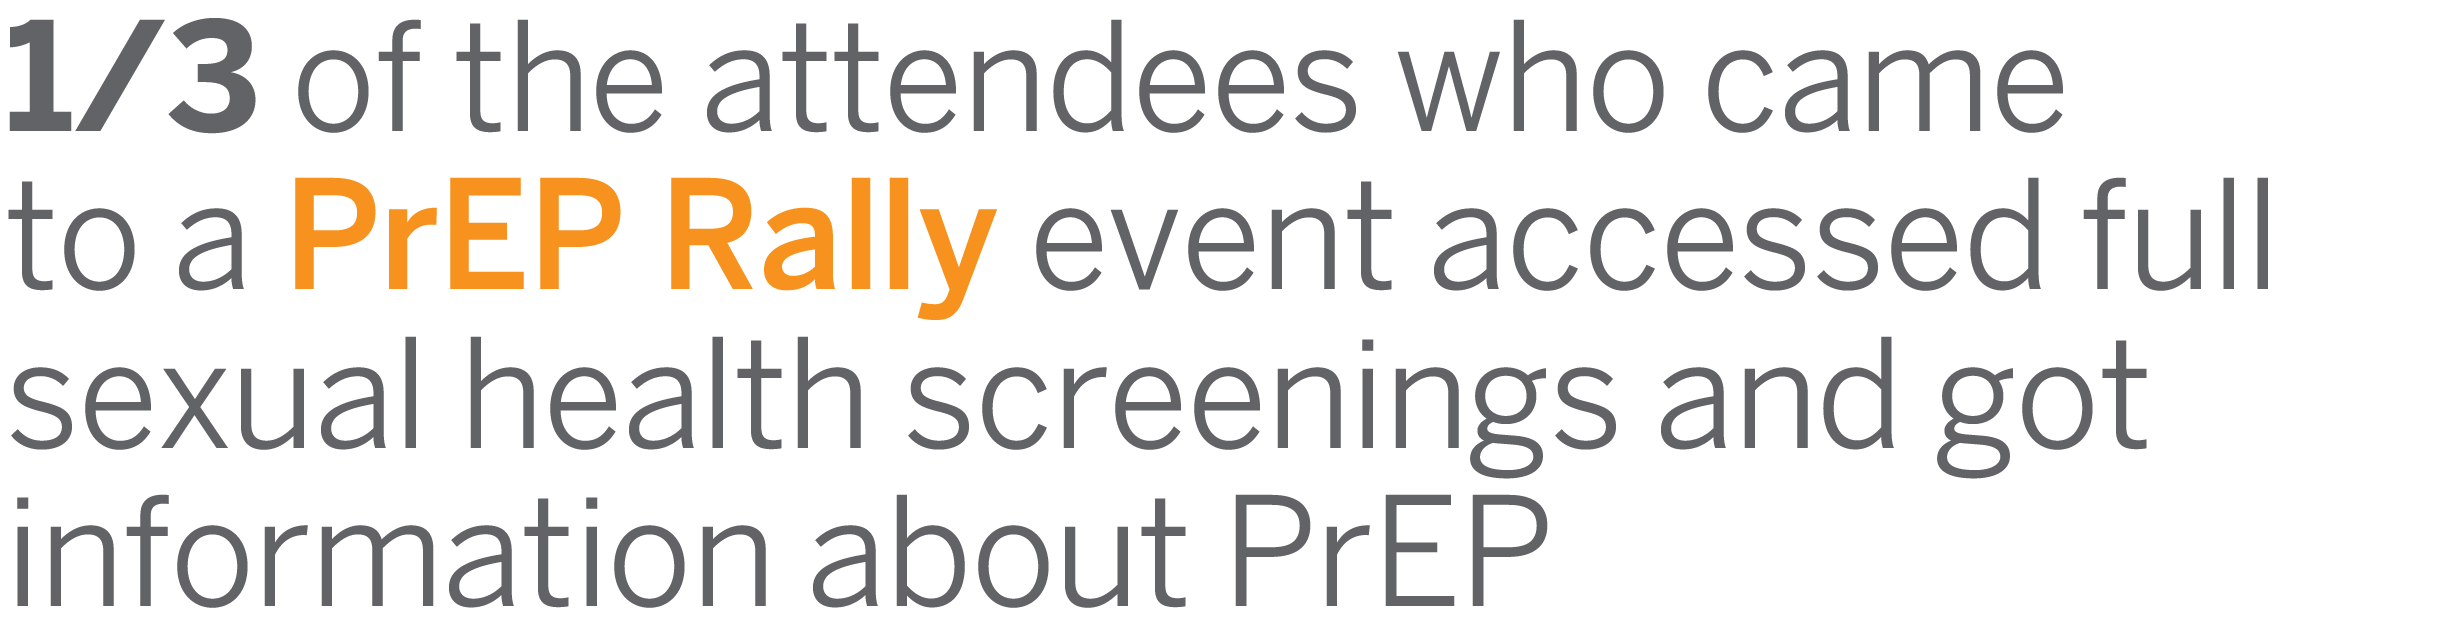 1/3 of the attendees who came to a PrEP Rally event accessed full sexual health screenings and got information about PrEP